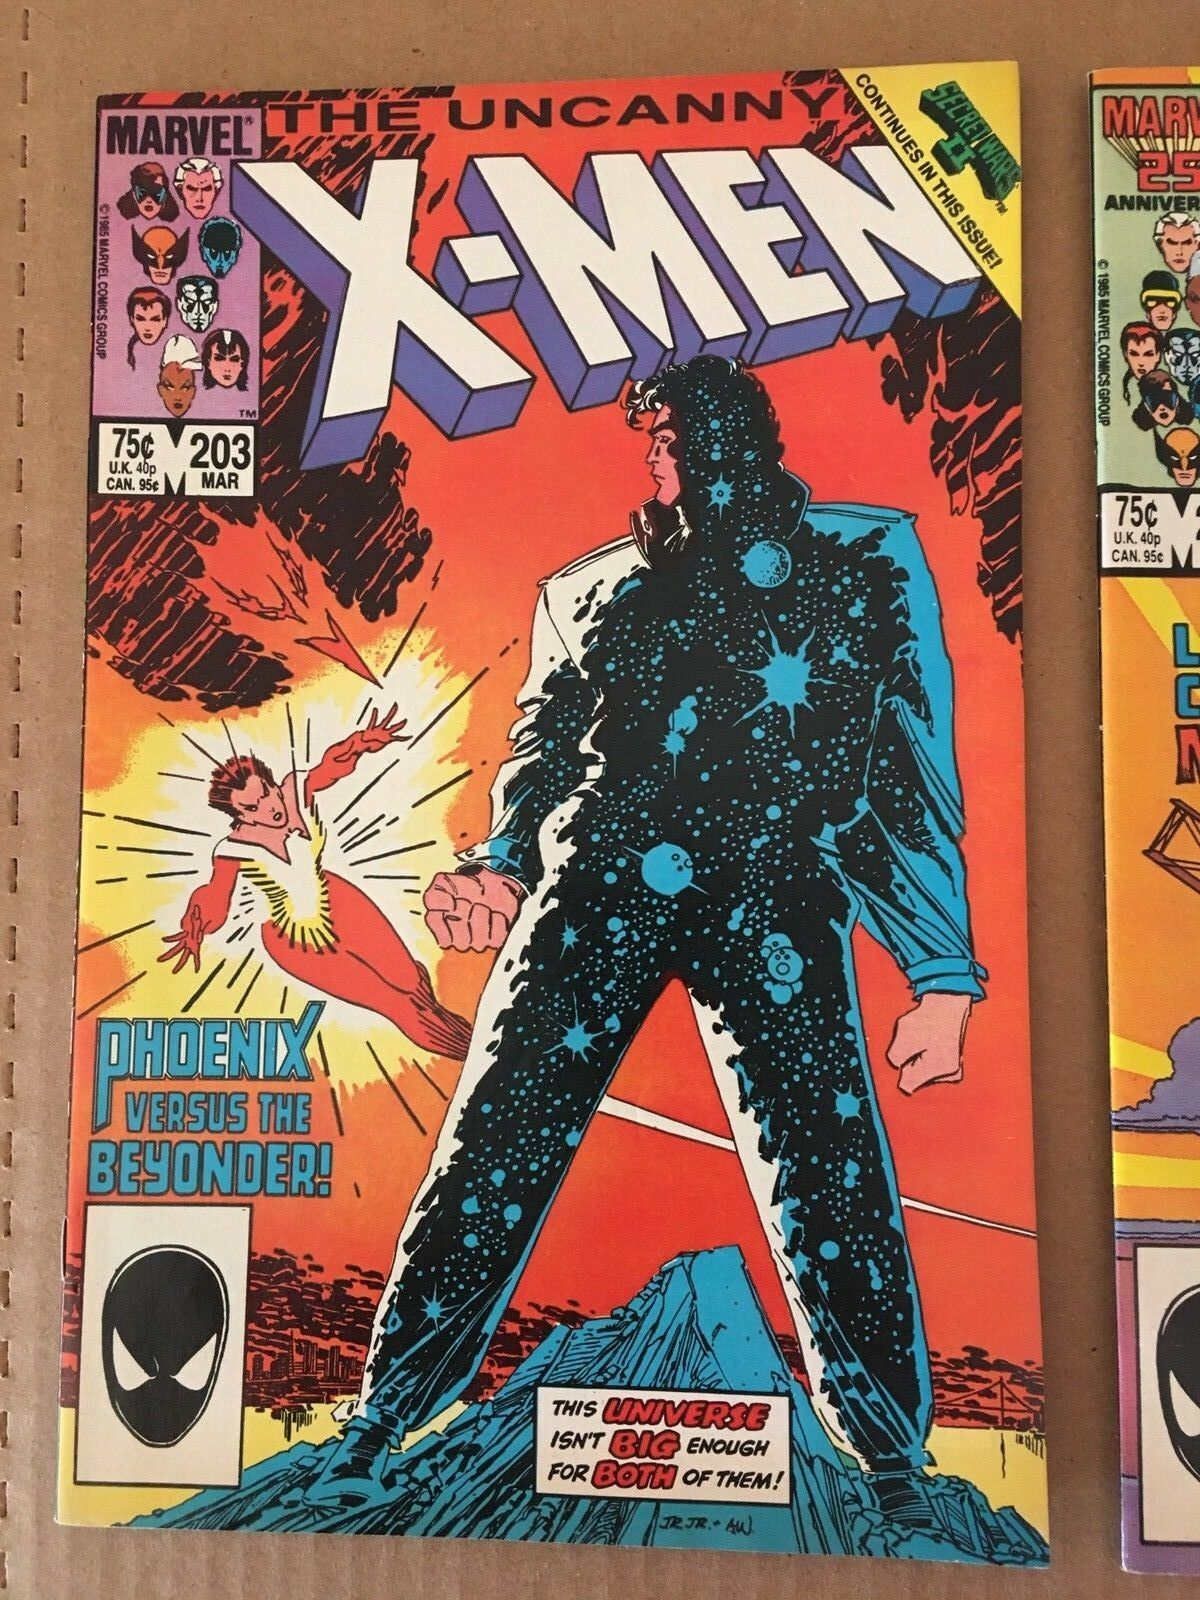 Uncanny X-Men #203 & 204 Marvel Comic Book Lot from 1986 VF+ Condition